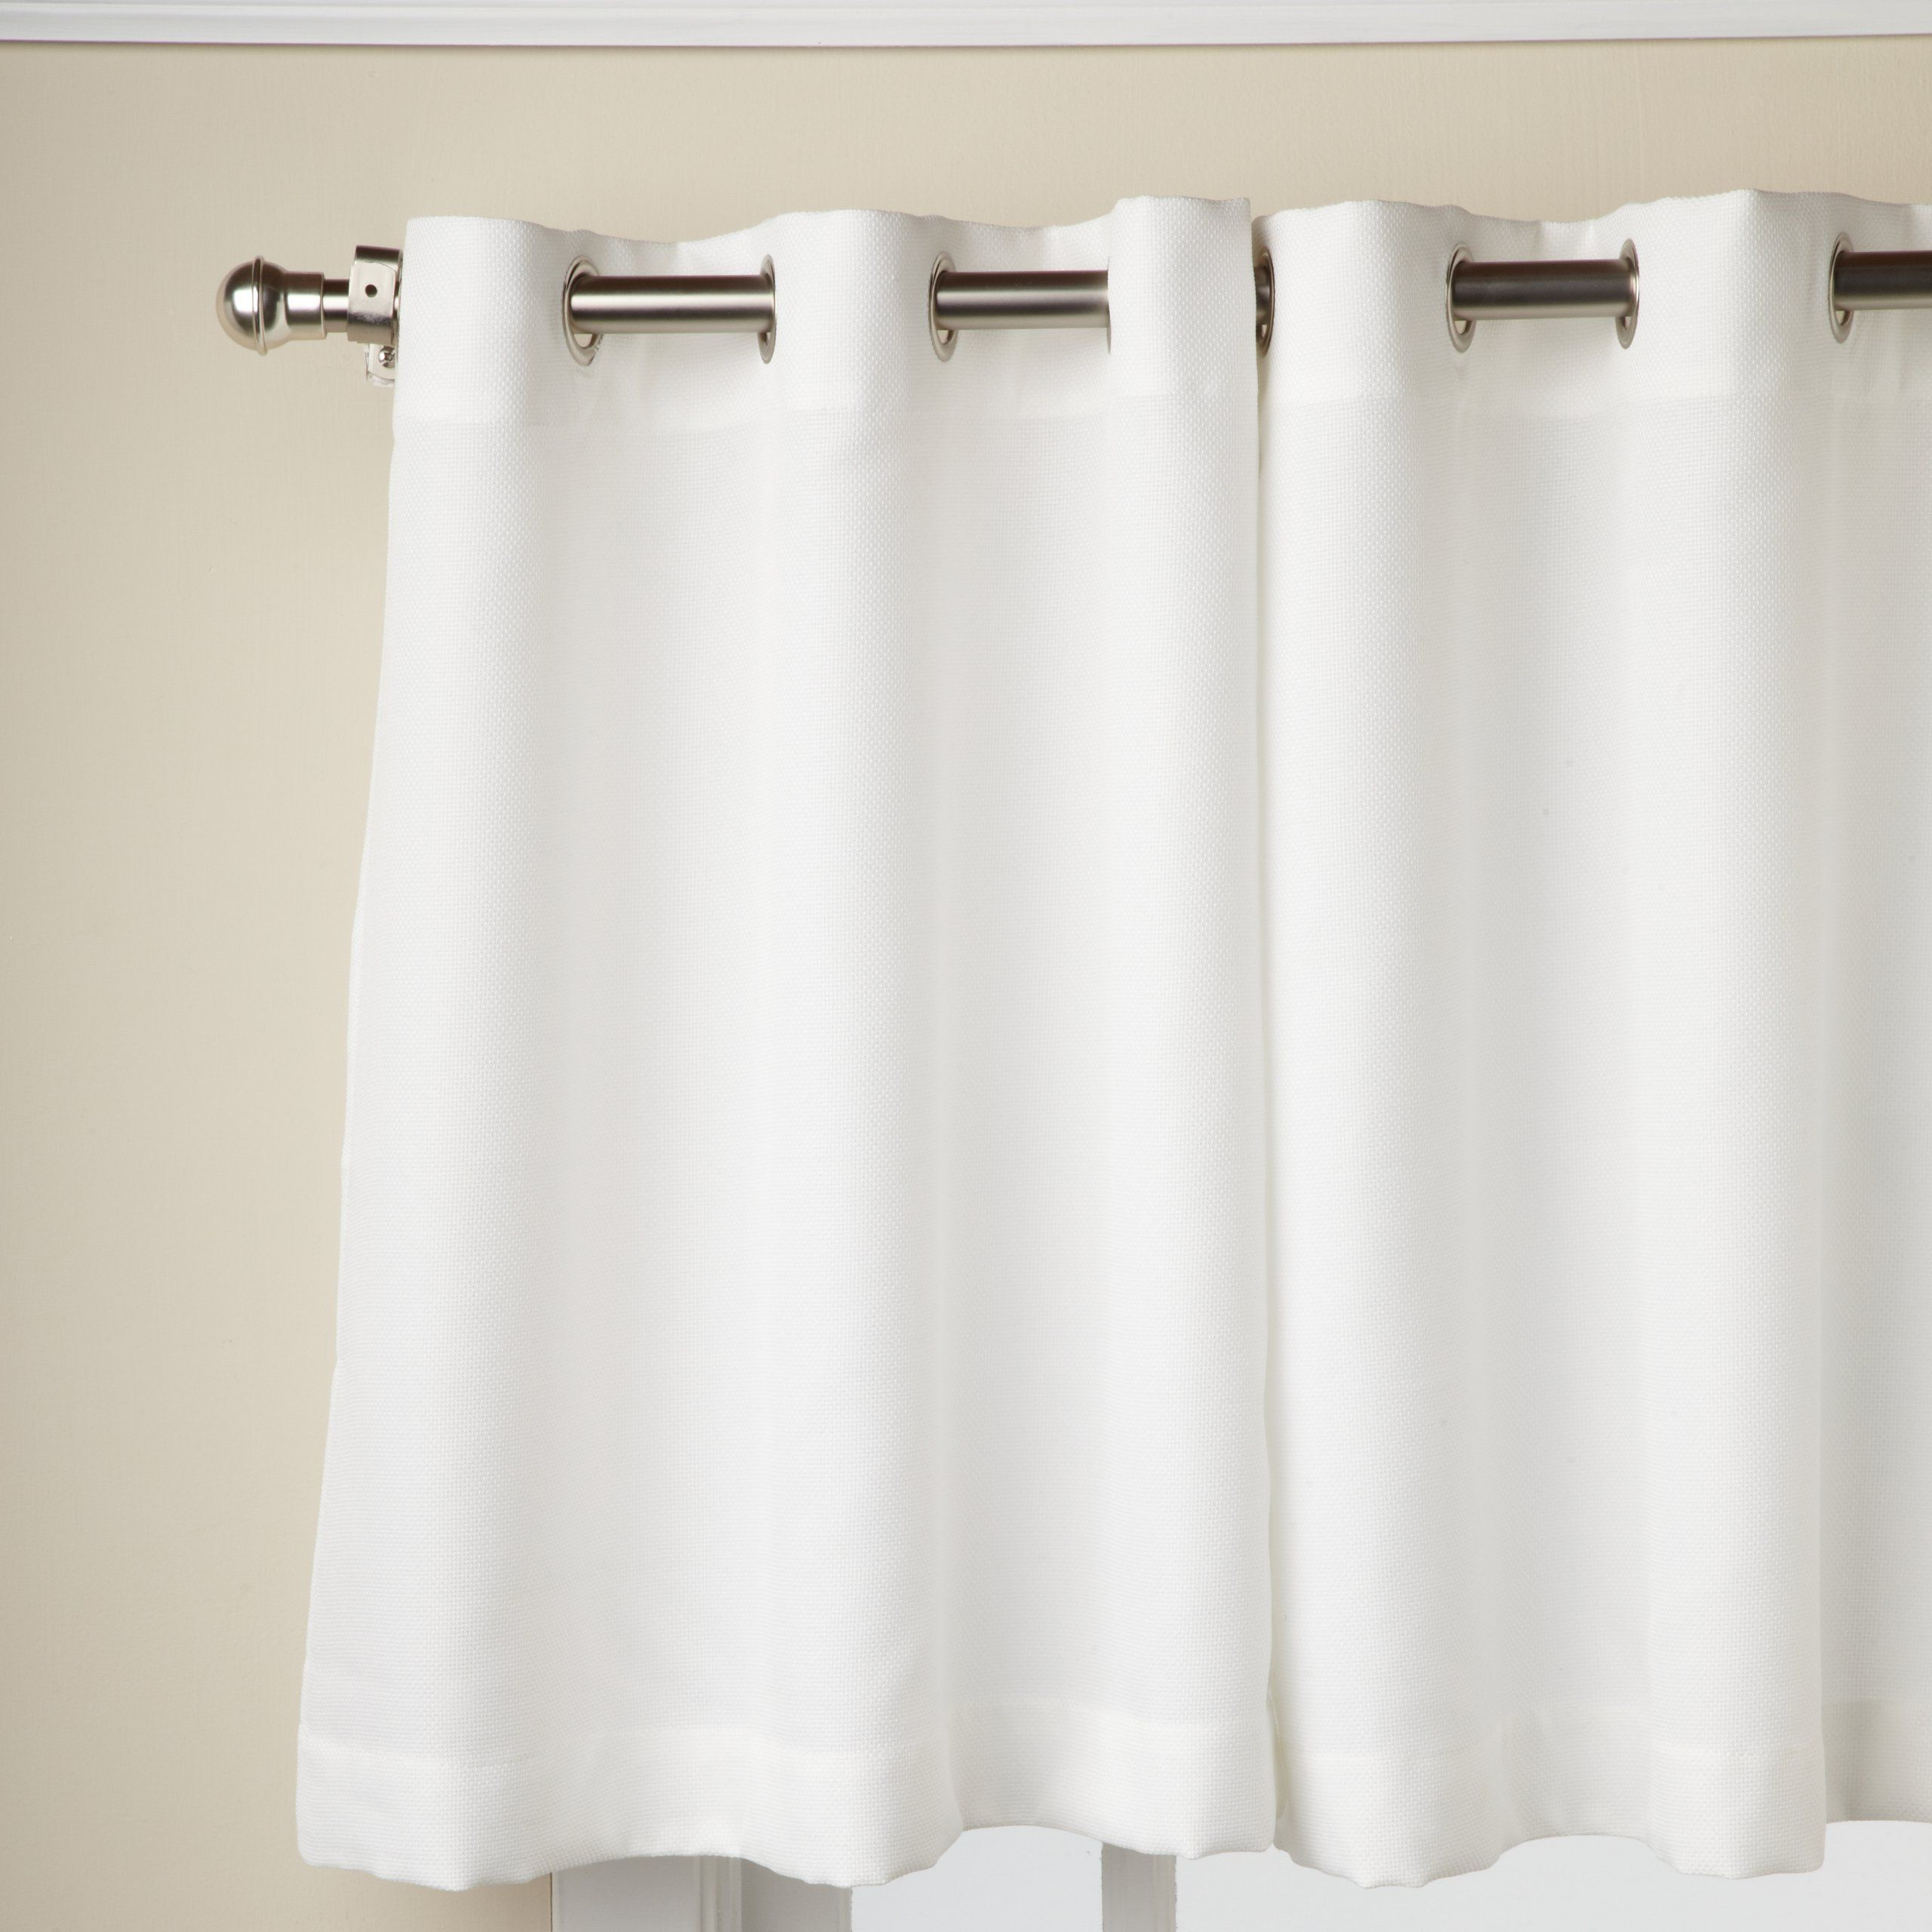 Modern Subtle Texture Solid White Kitchen Curtain Parts With Grommets Tier And Valance Options Inside Most Up To Date Amazon: Lorraine Home Fashions Jackson 58 Inch X 24 Inch (View 12 of 20)